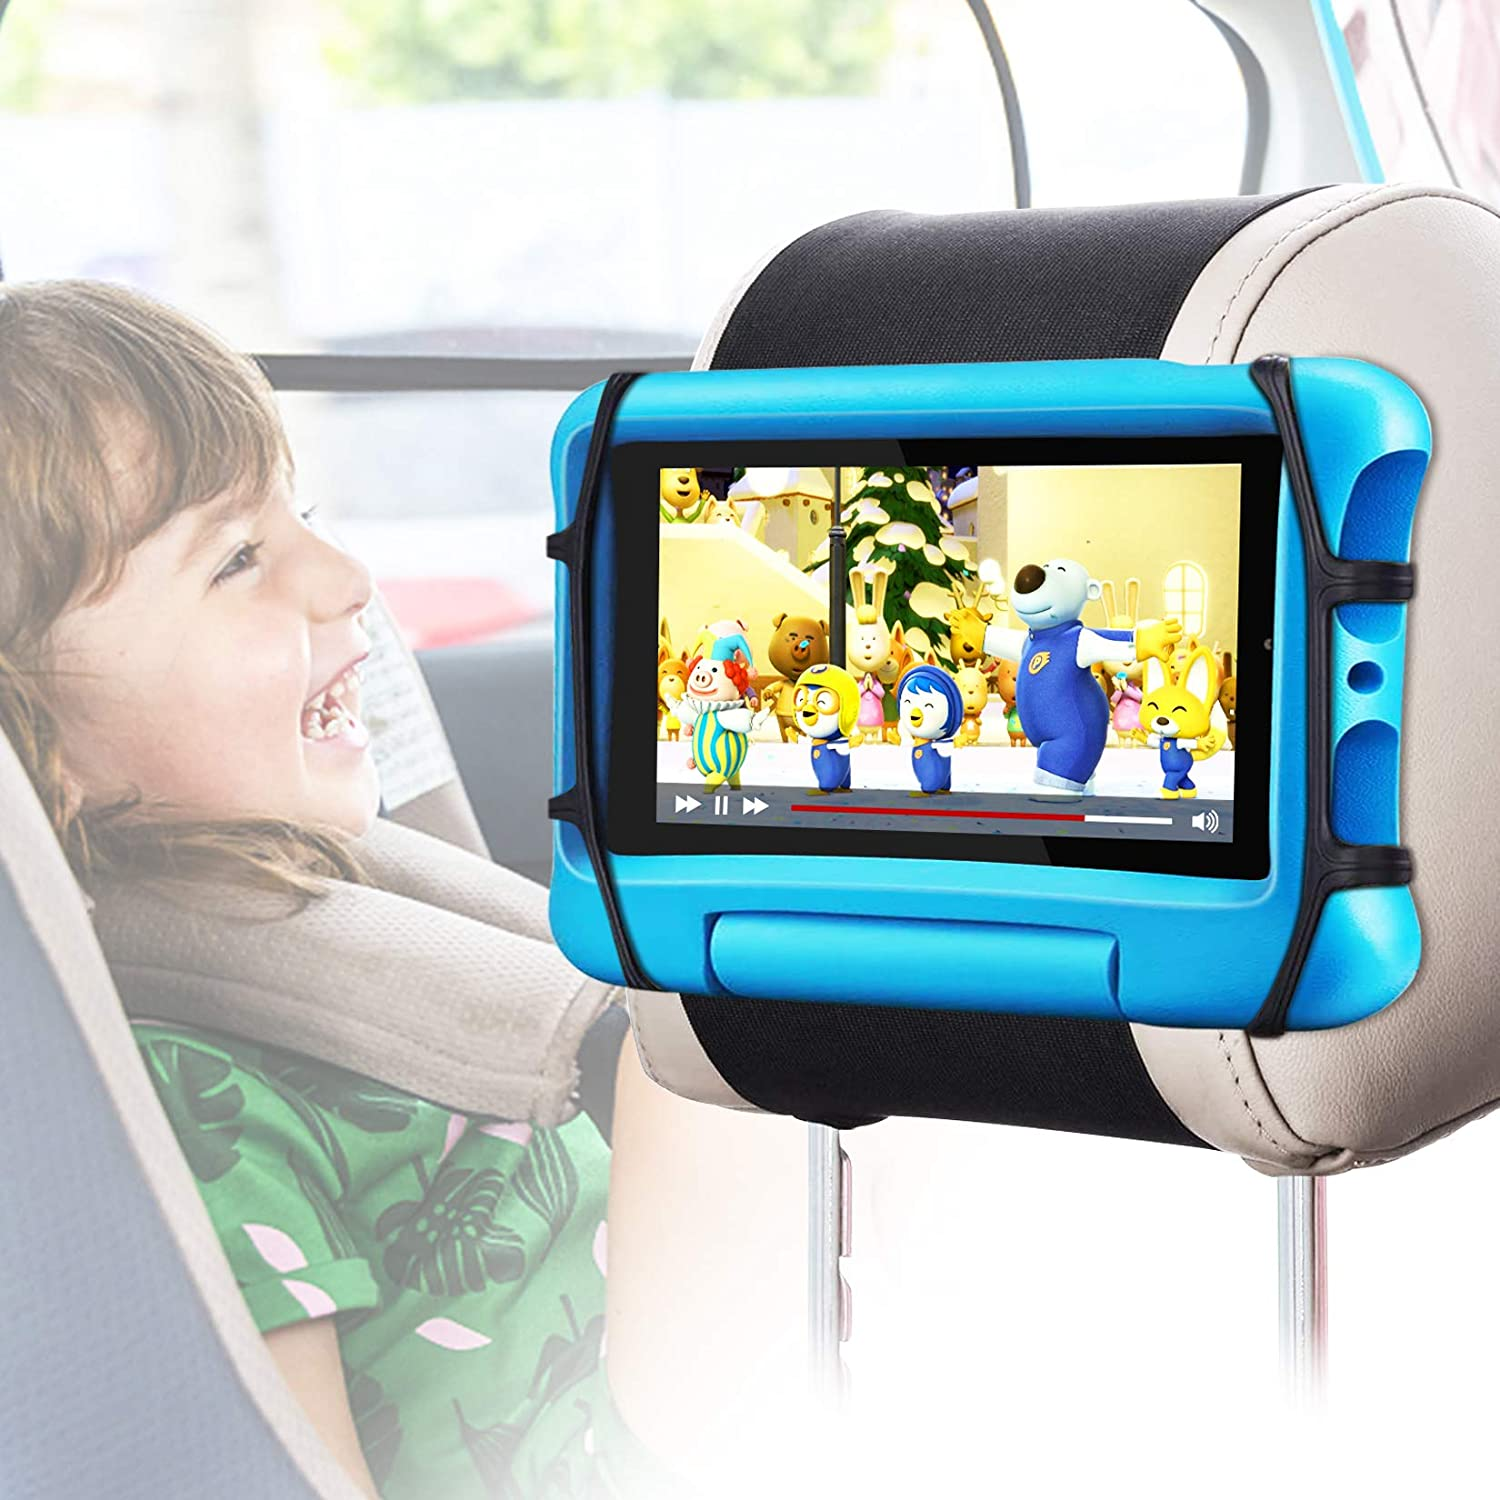 Car Headrest Mount Holder, FANGOR Universal Tablet Holder for Kids in Back Seats, Anti-Slip Strap and Holding Net,Angle-Adjustable/ Fits All 7 Inch to 10.5 Inch Tablets